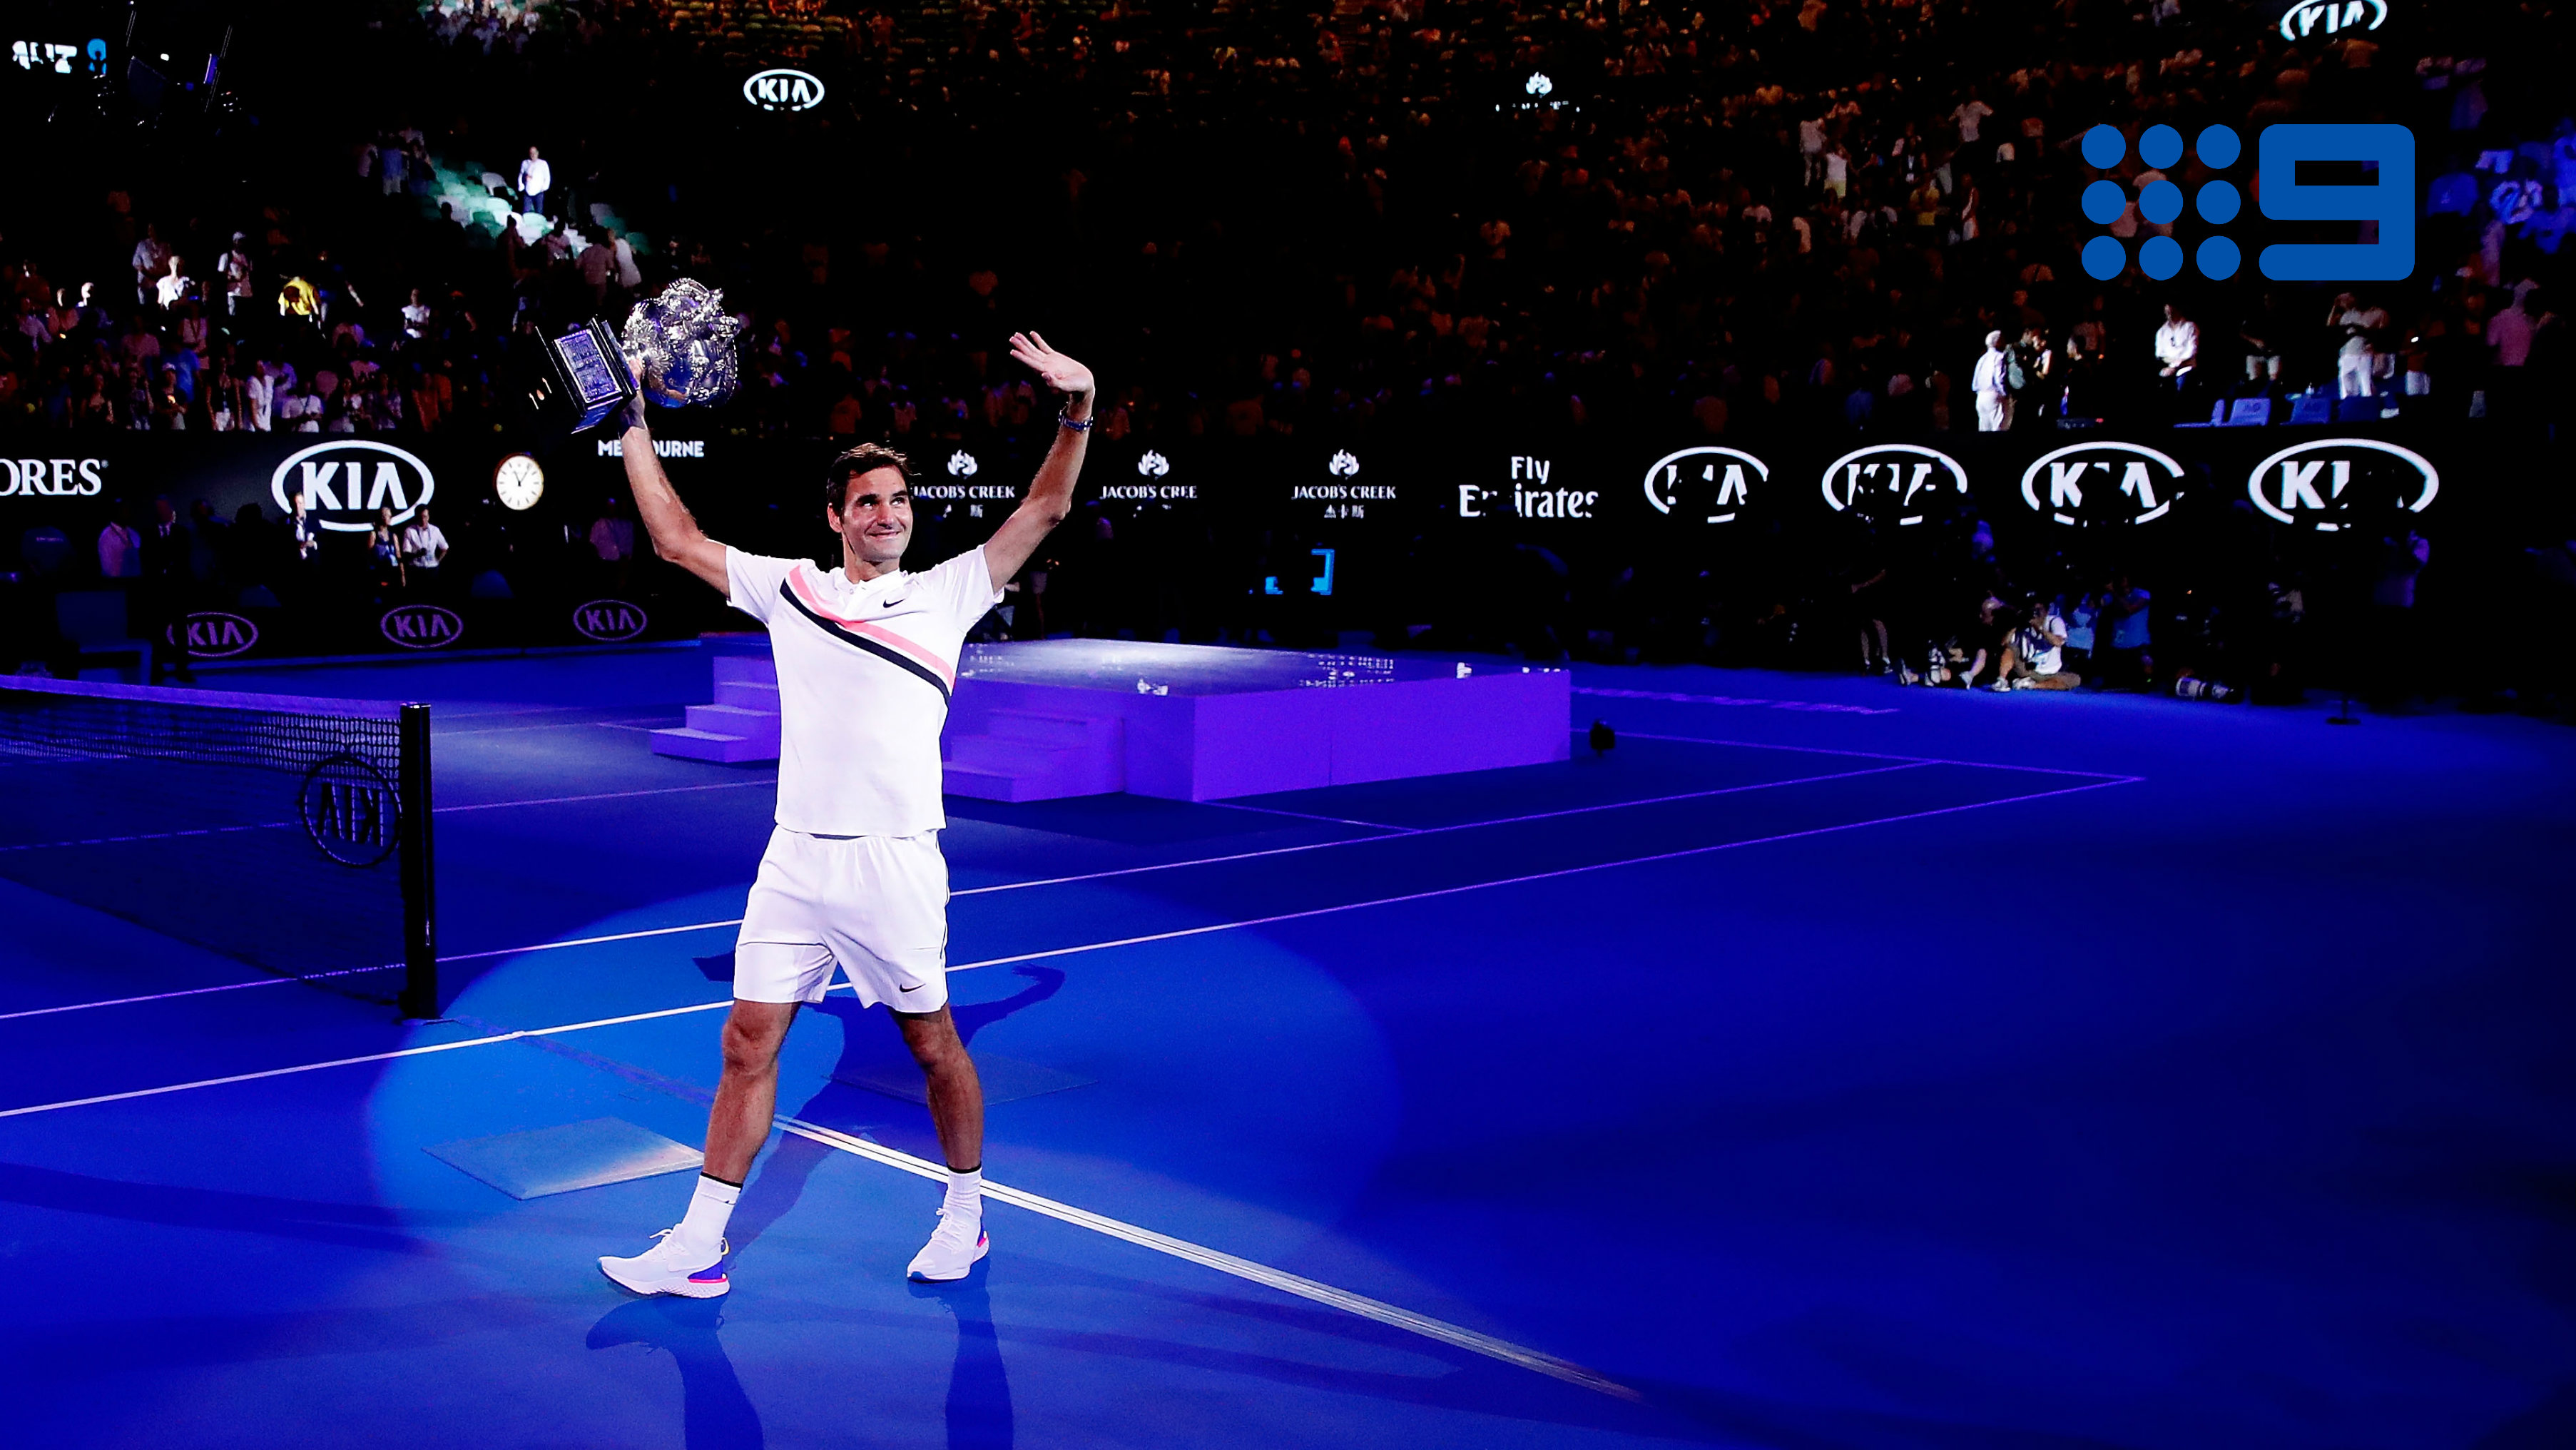 Game, set and match: Nine ace secures sixth year of Australian Open